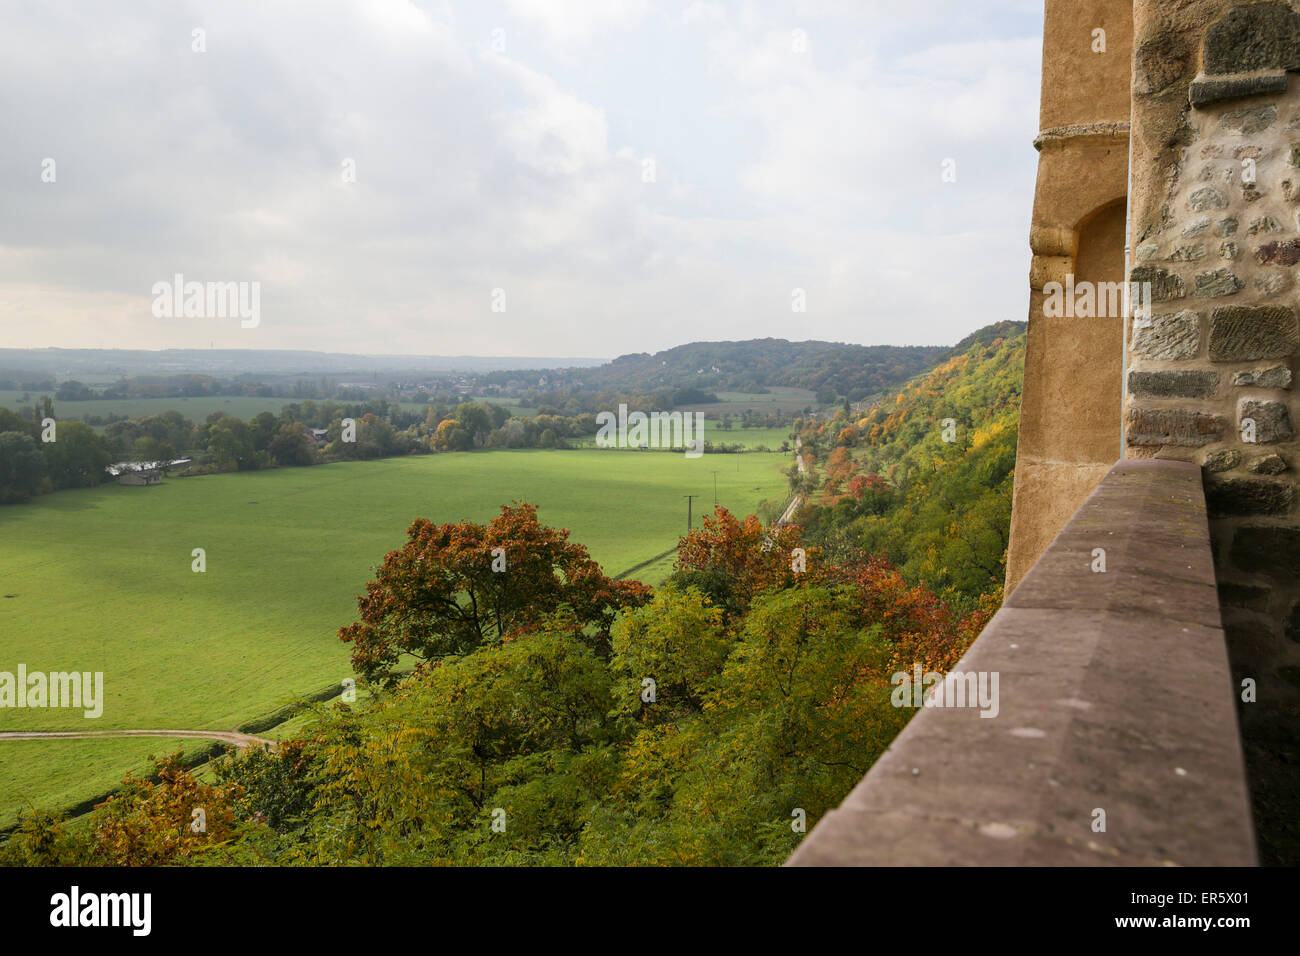 View from castle Goseck, Goseck, Saxony-Anhalt, Germany - Stock Image